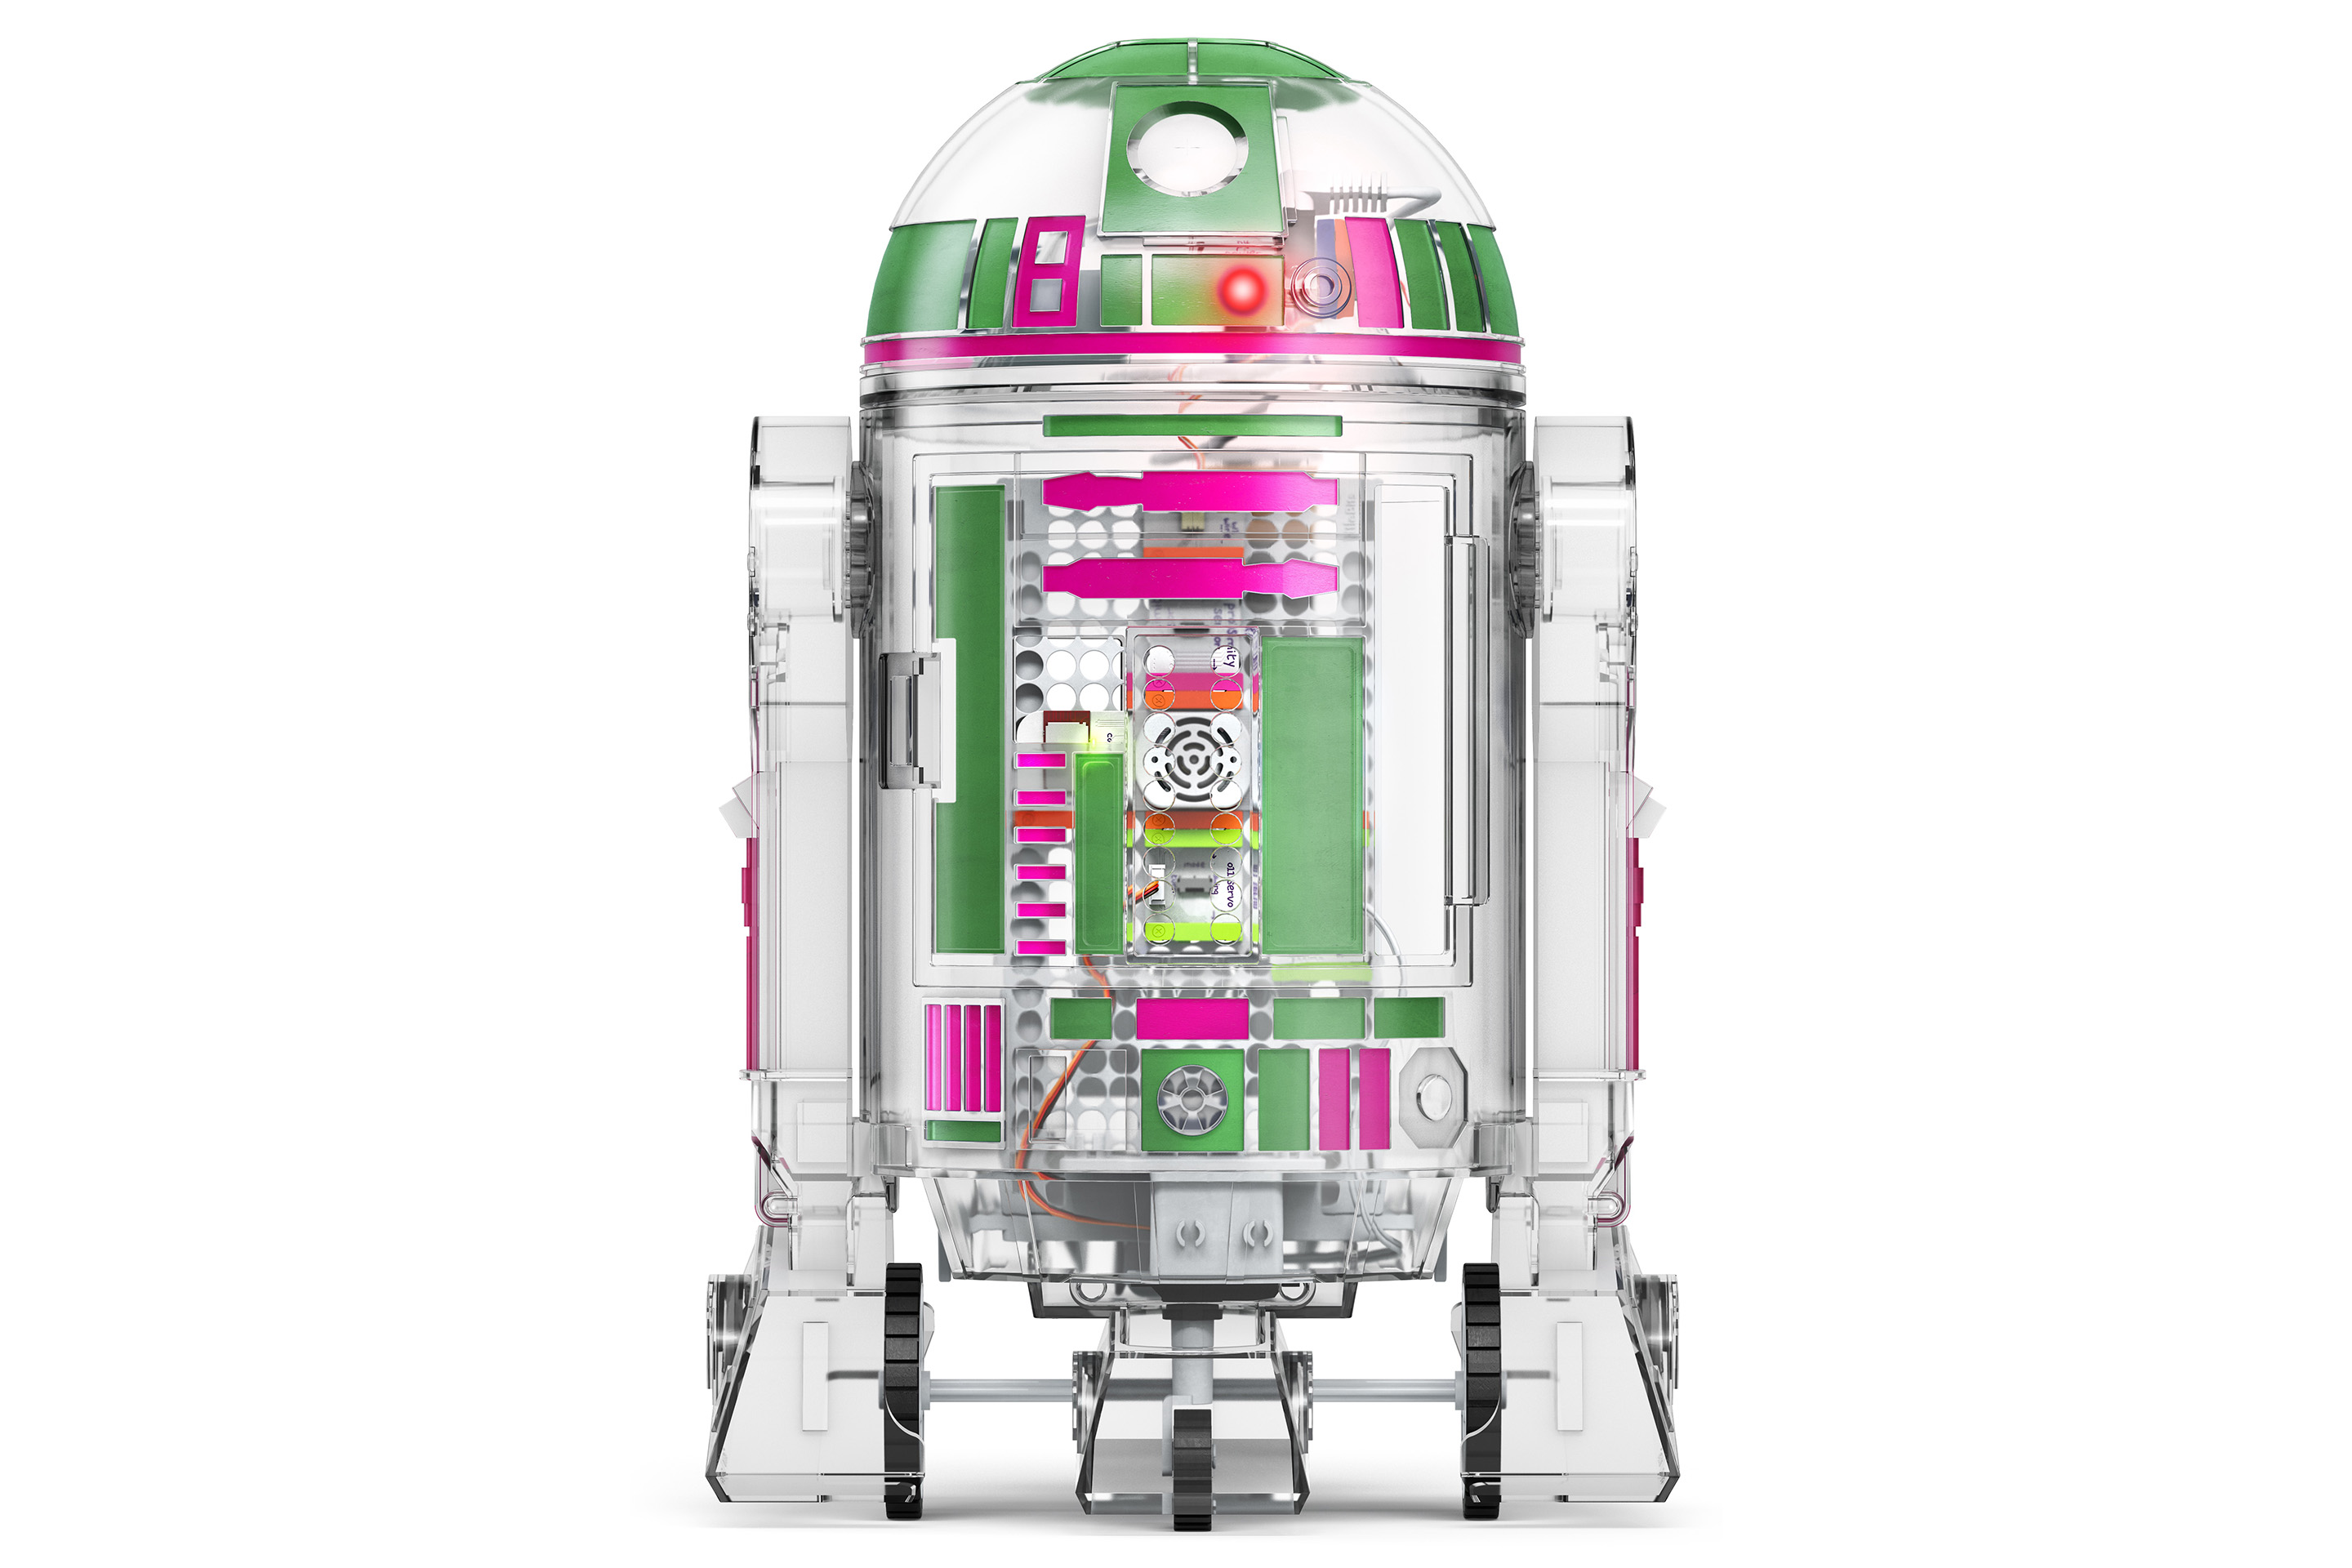 The Droid Inventor Kit by Disney accelerator startup littleBits goes on sale for Force Friday.